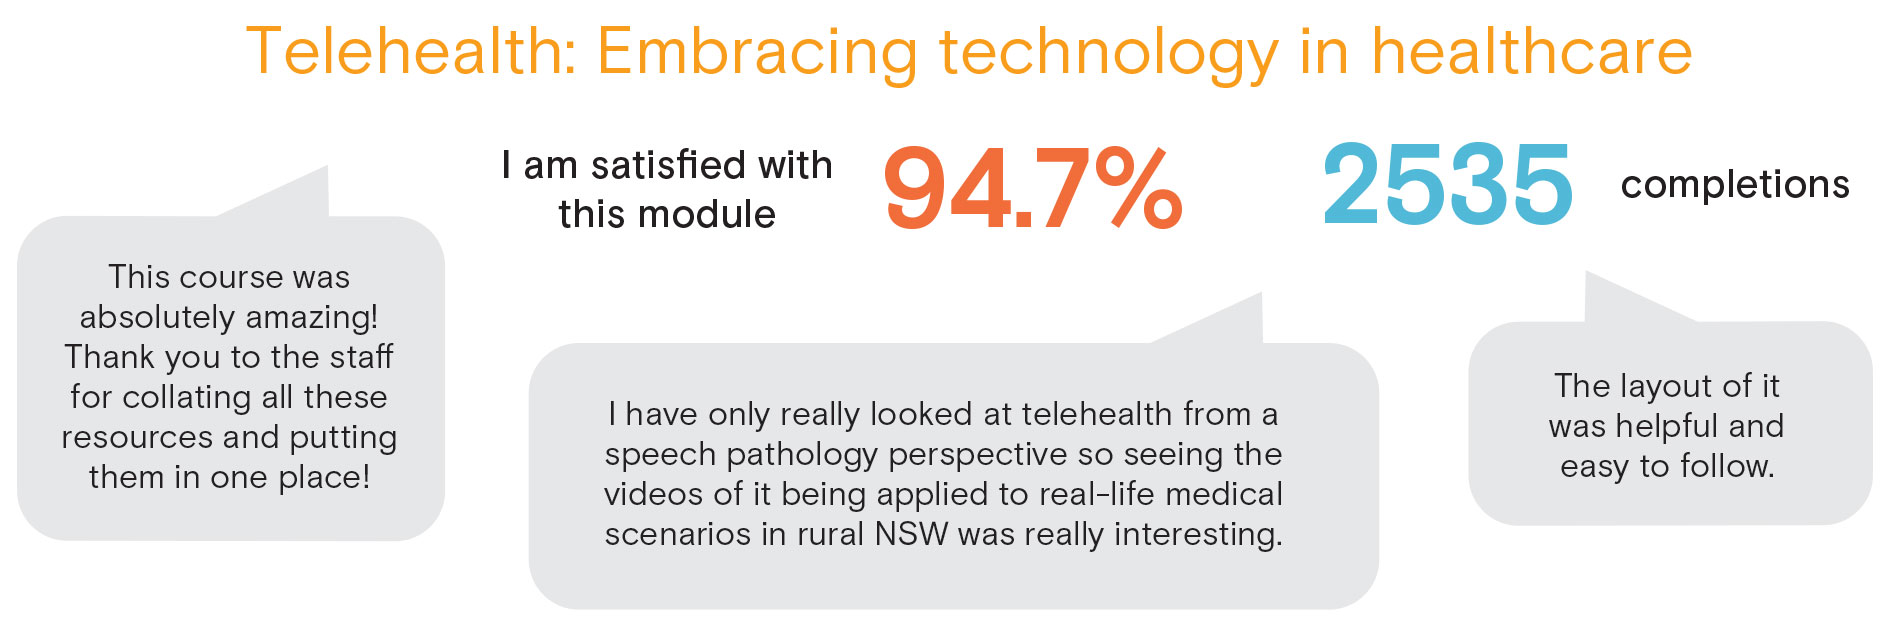 Telehealth: Embracing technology in healthcare - module feedback